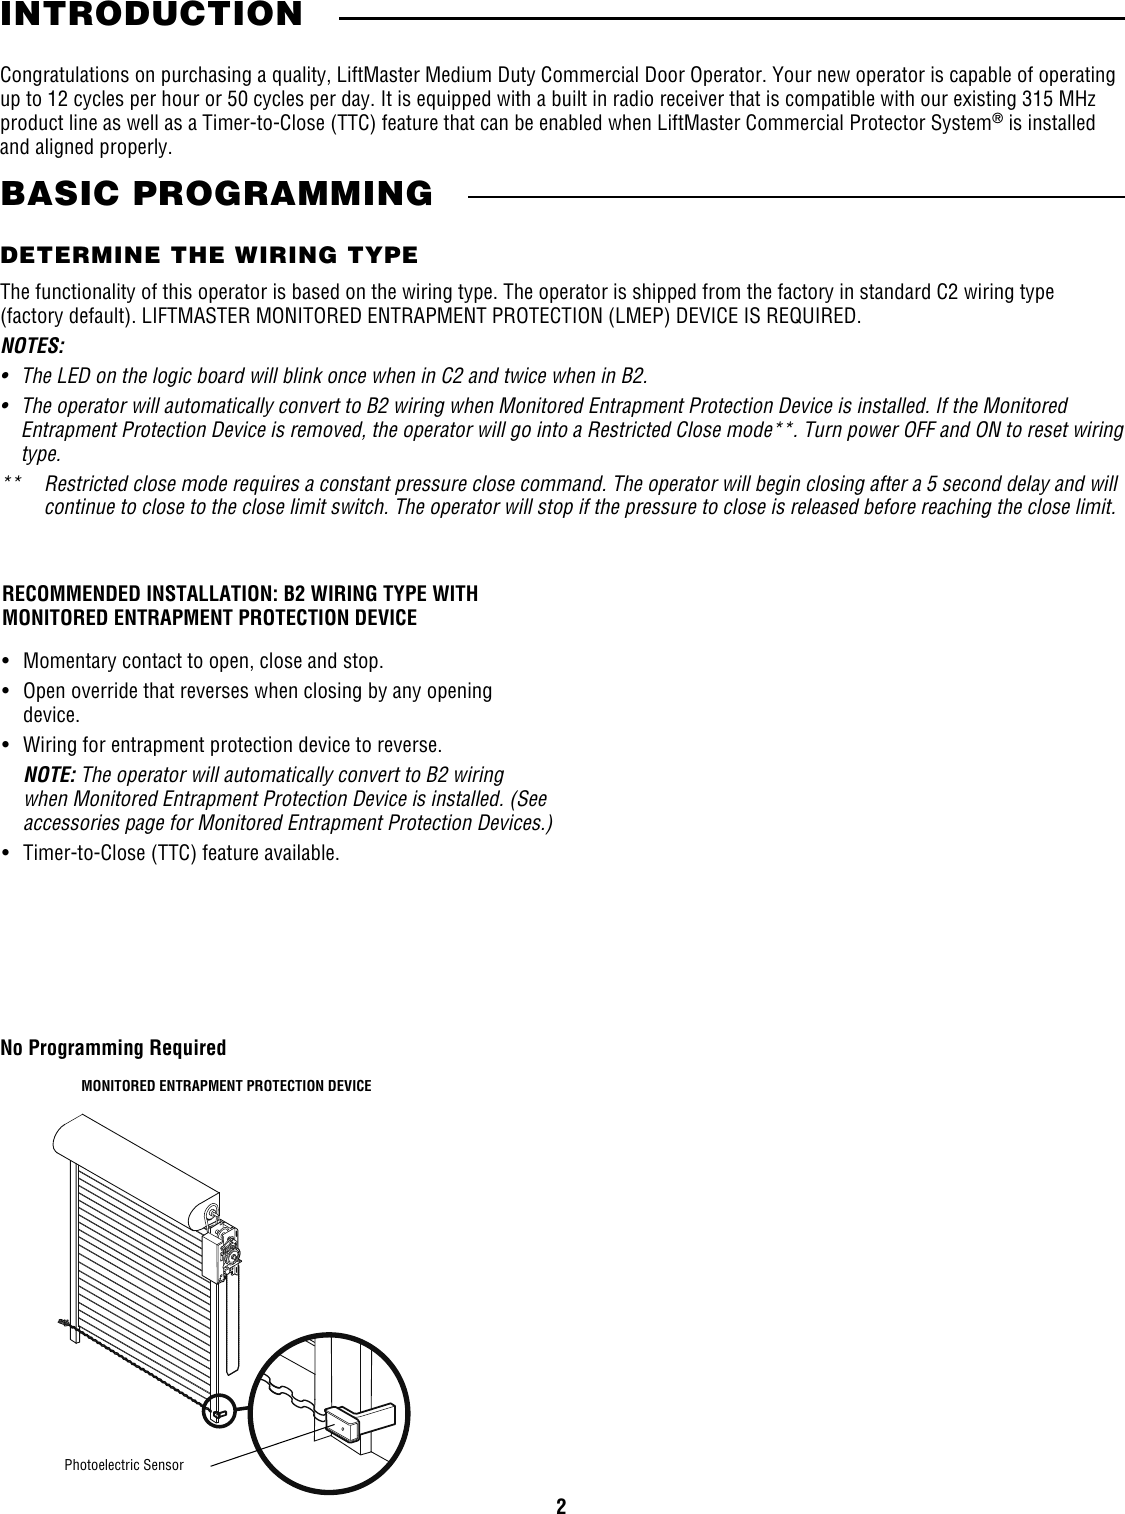 Liftmaster Mh Owners Manual Users Guide For Medium Dutty Commerical Commercial Door Wiring Page 2 Of 12